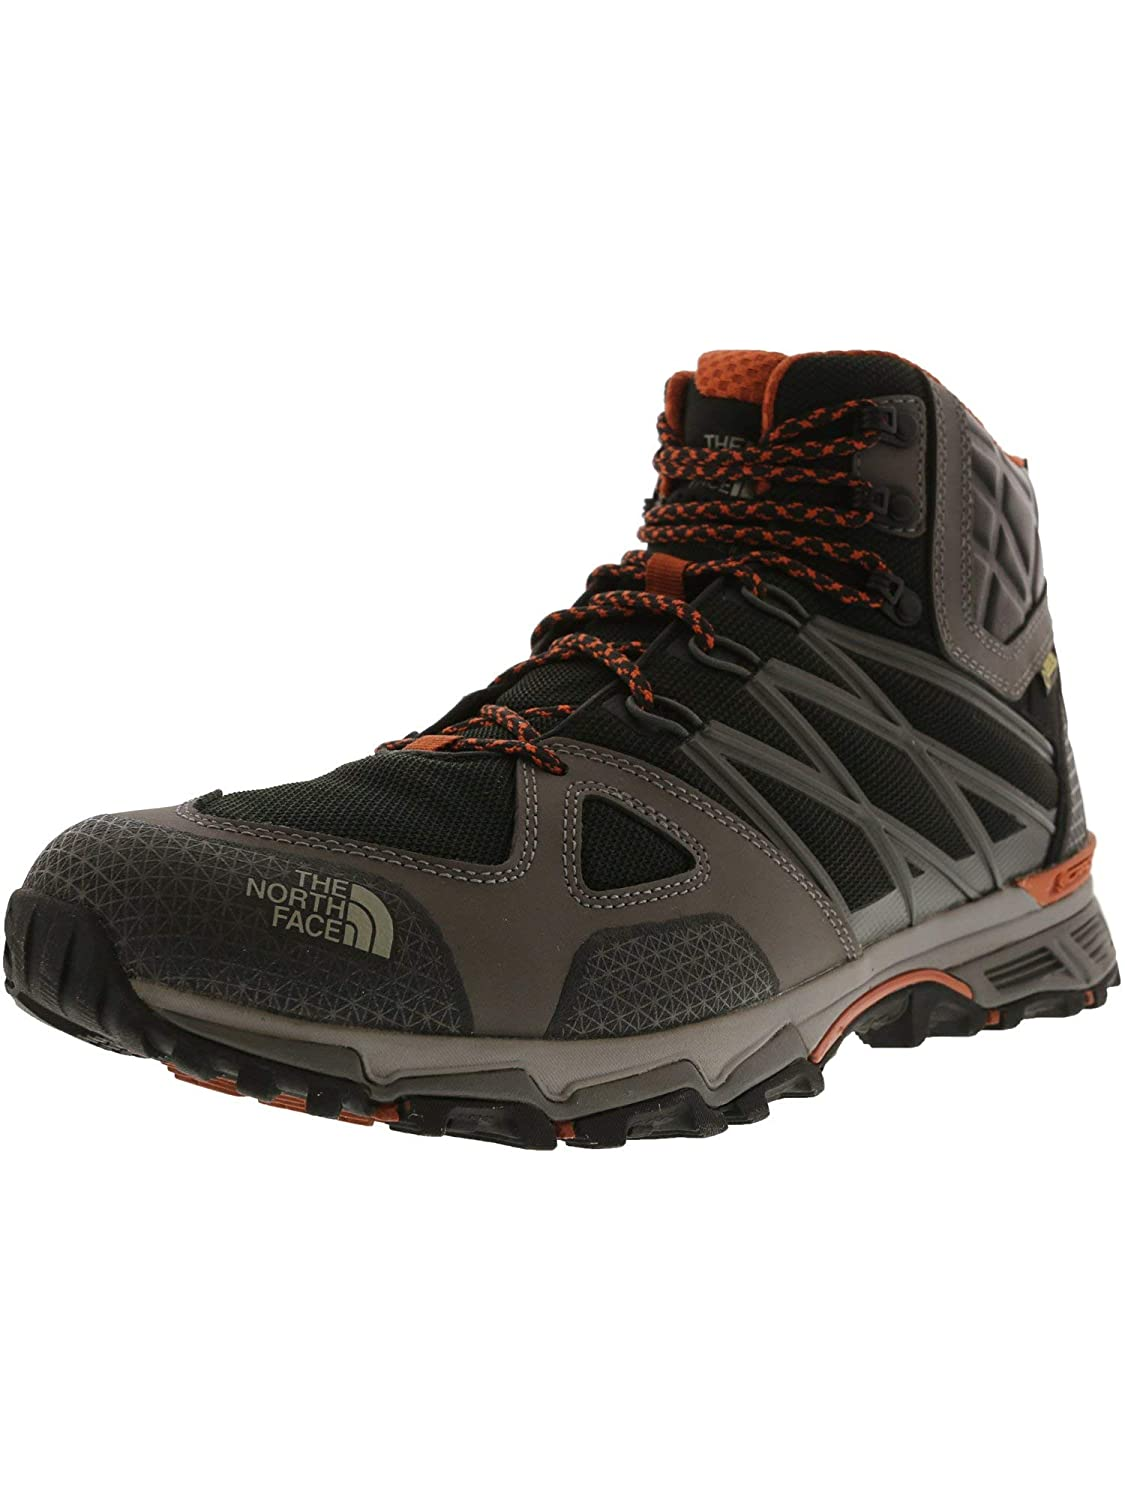 THE NORTH FACE Herren M Ultra Hike Ii Mid GTX Trekking-& Wanderhalbschuhe